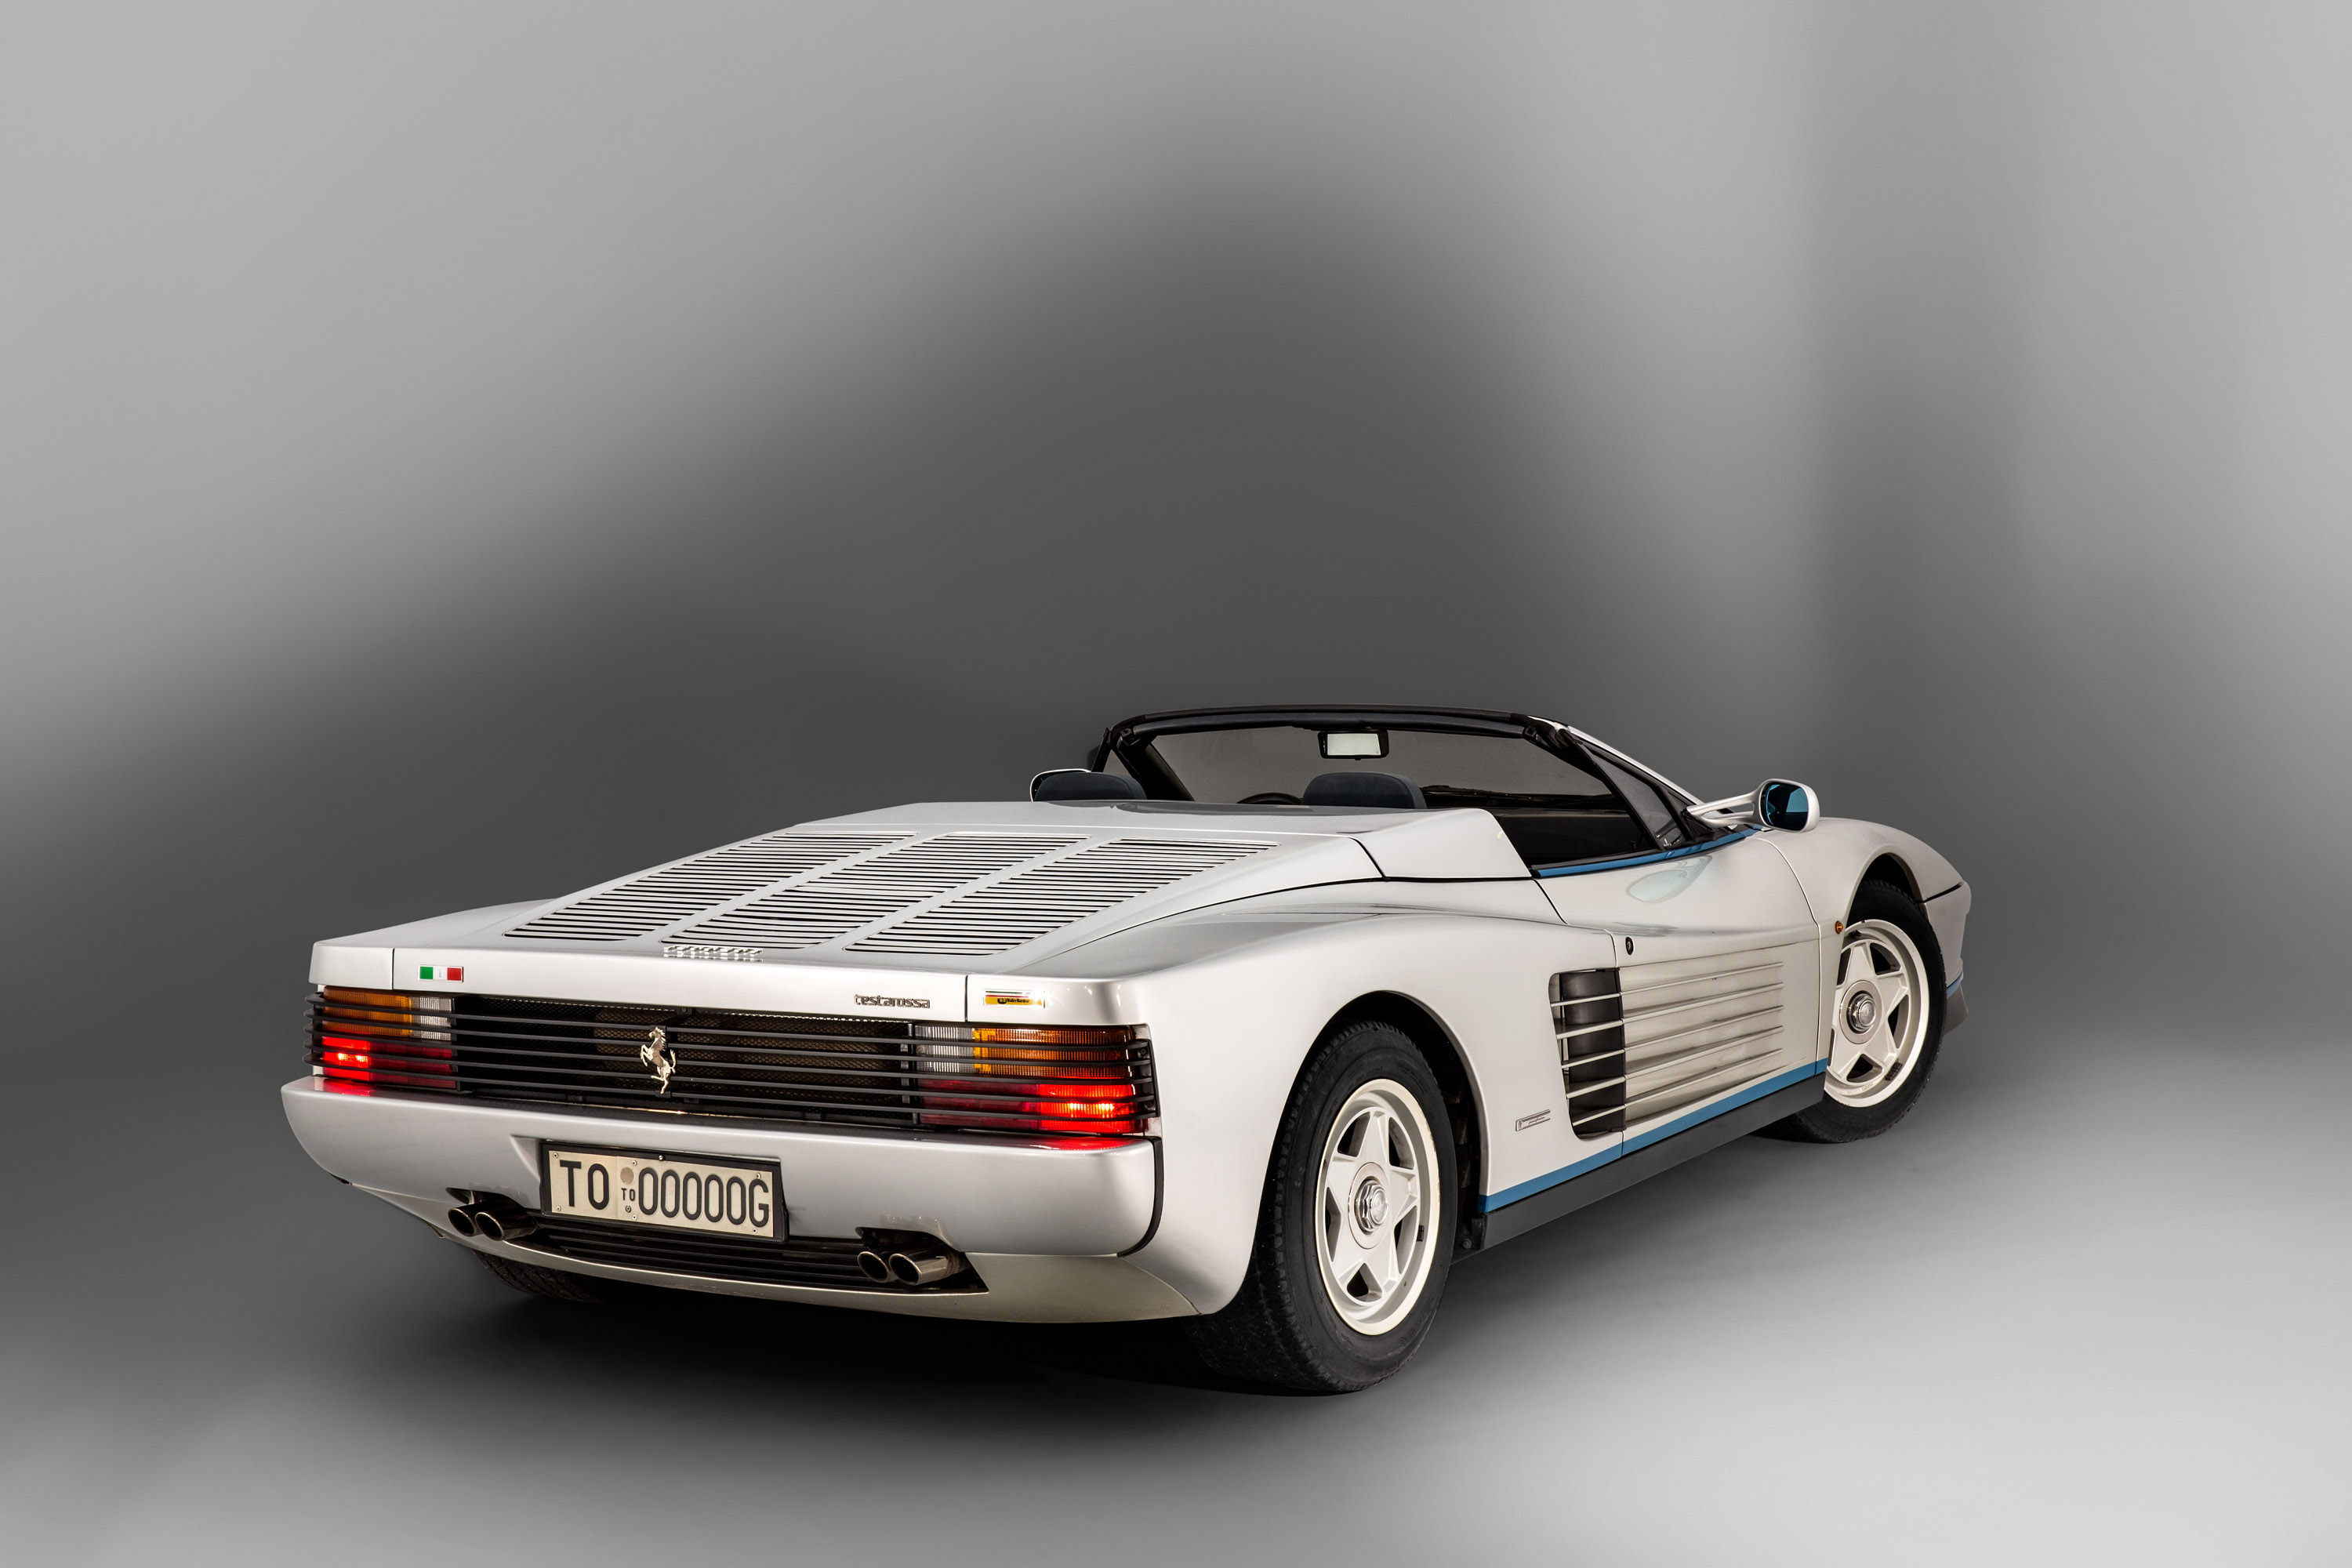 texas sale testarossa listings of offered view std com ferrari c houston cc driversource picture in white mndw by for large classiccars